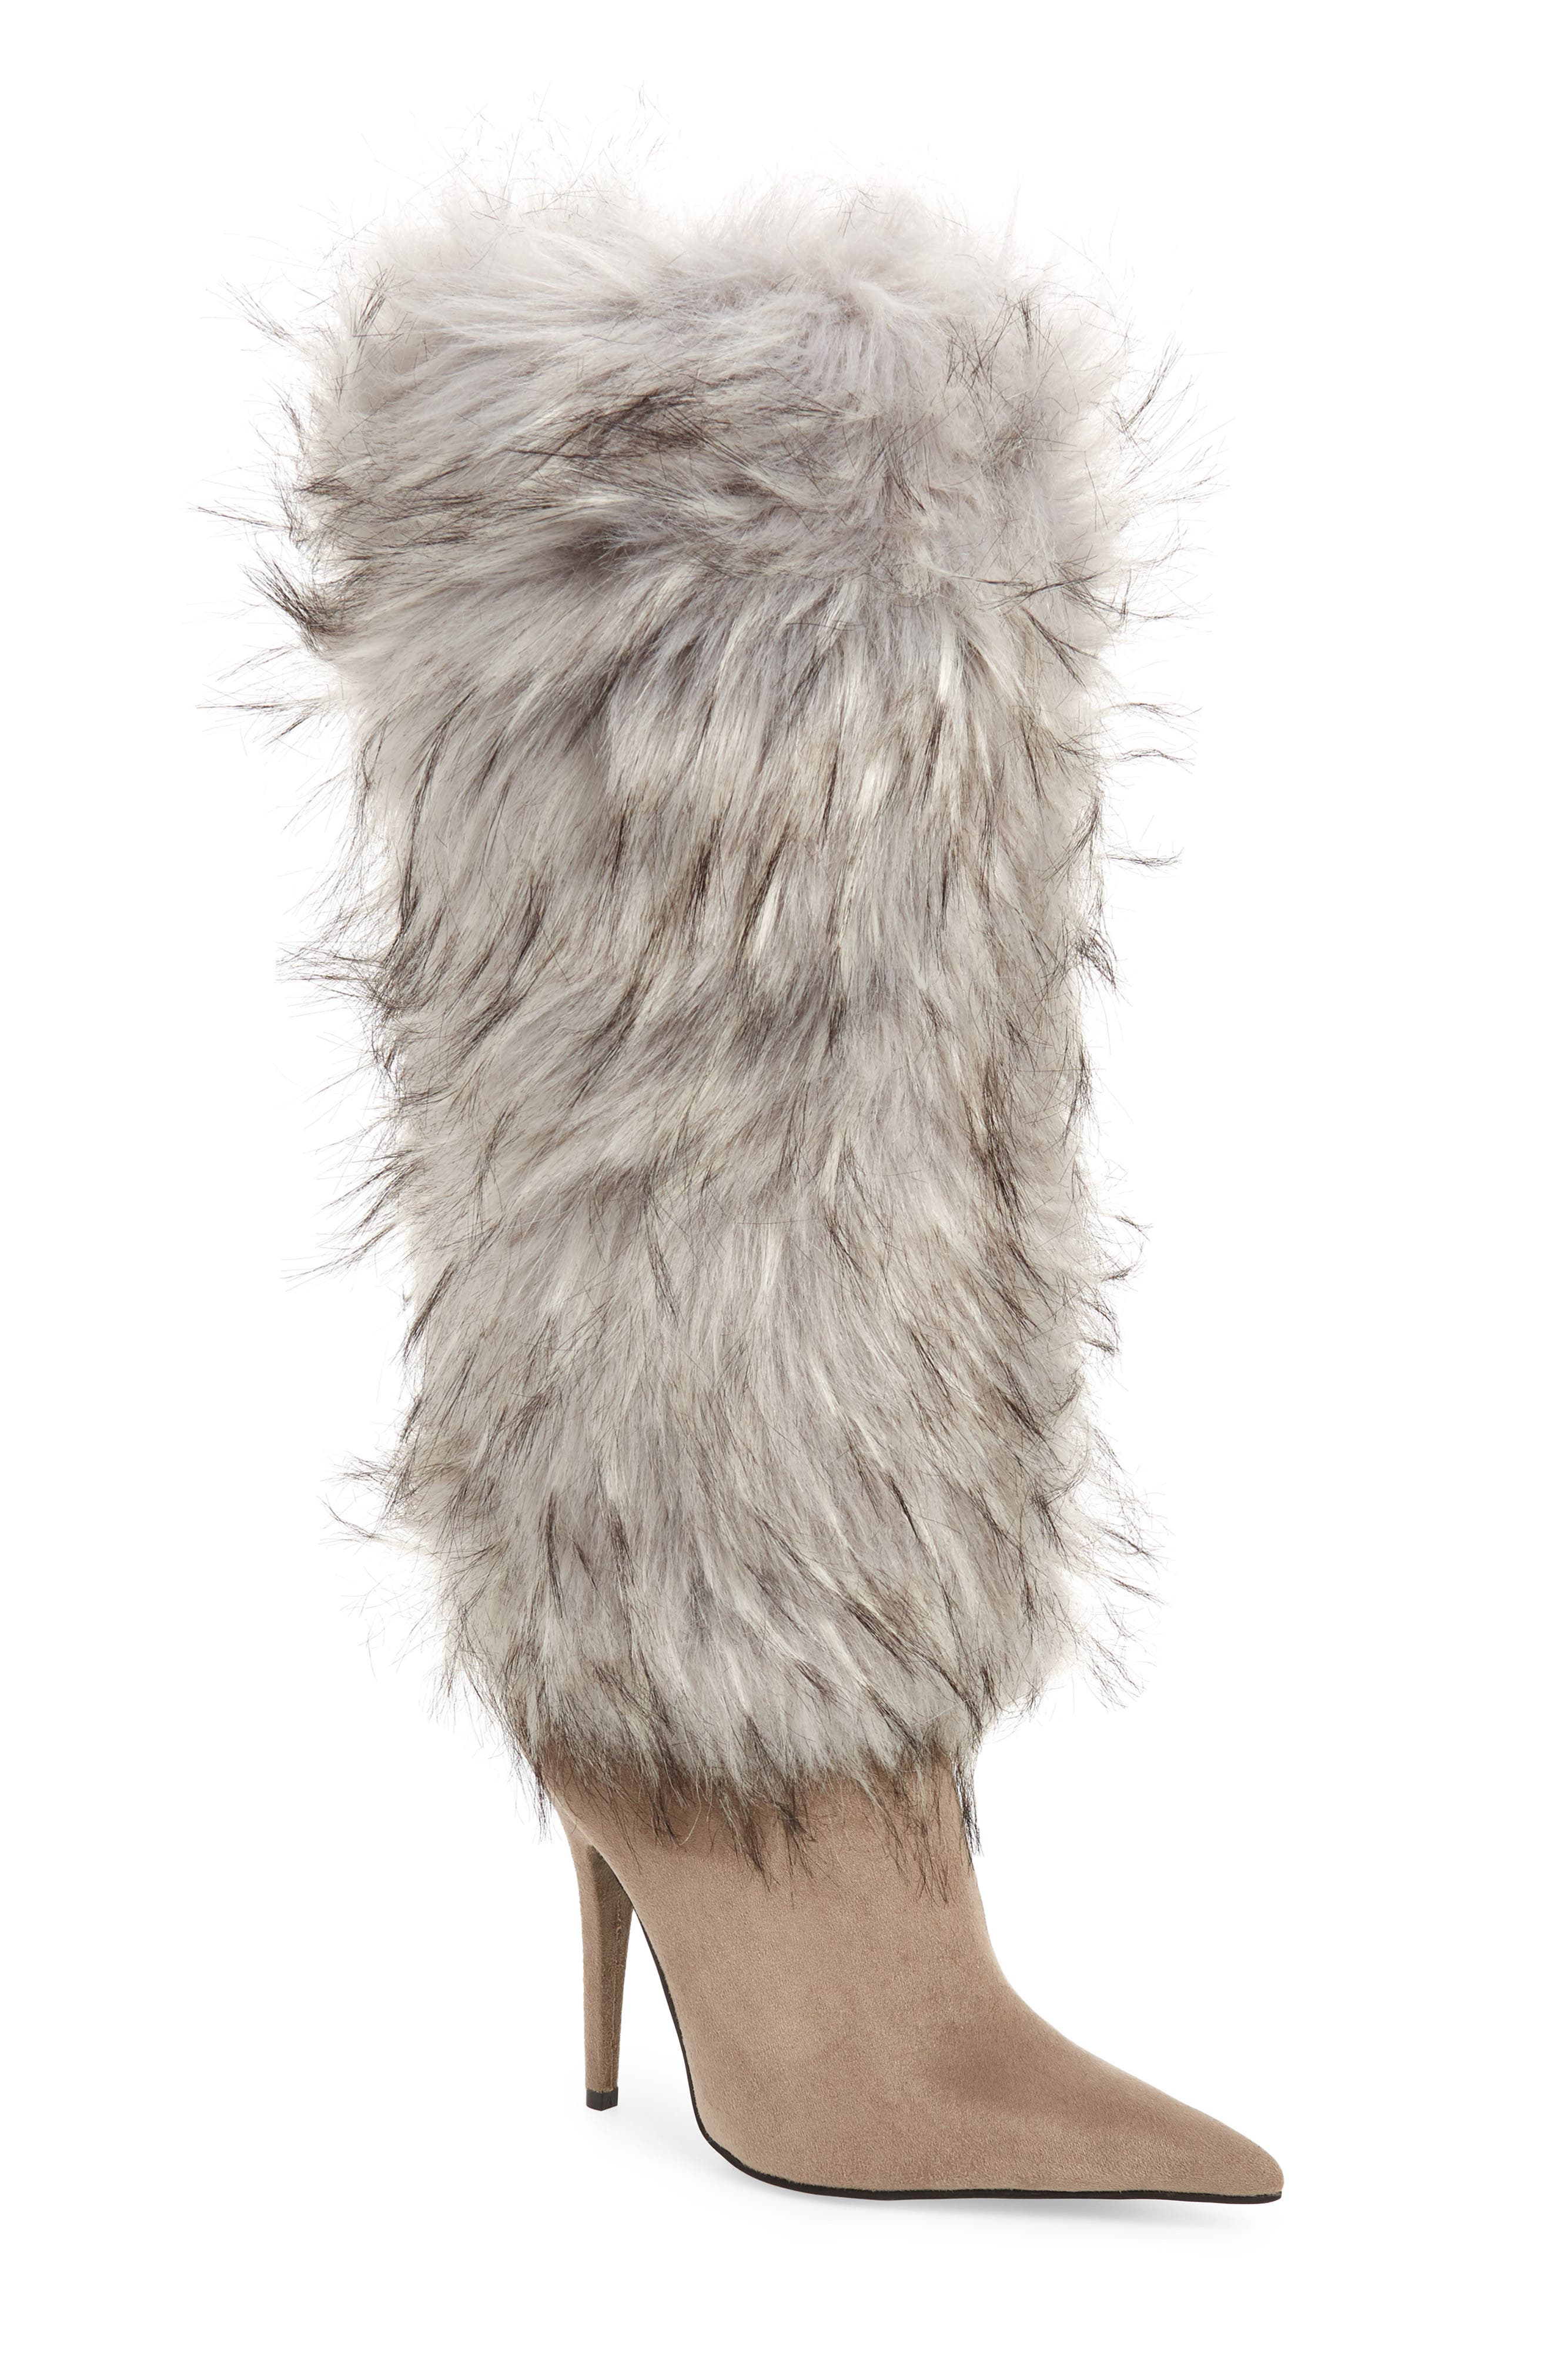 Vedet Faux Fur Knee High Boot,                             Main thumbnail 1, color,                             DARK TAUPE SUEDE